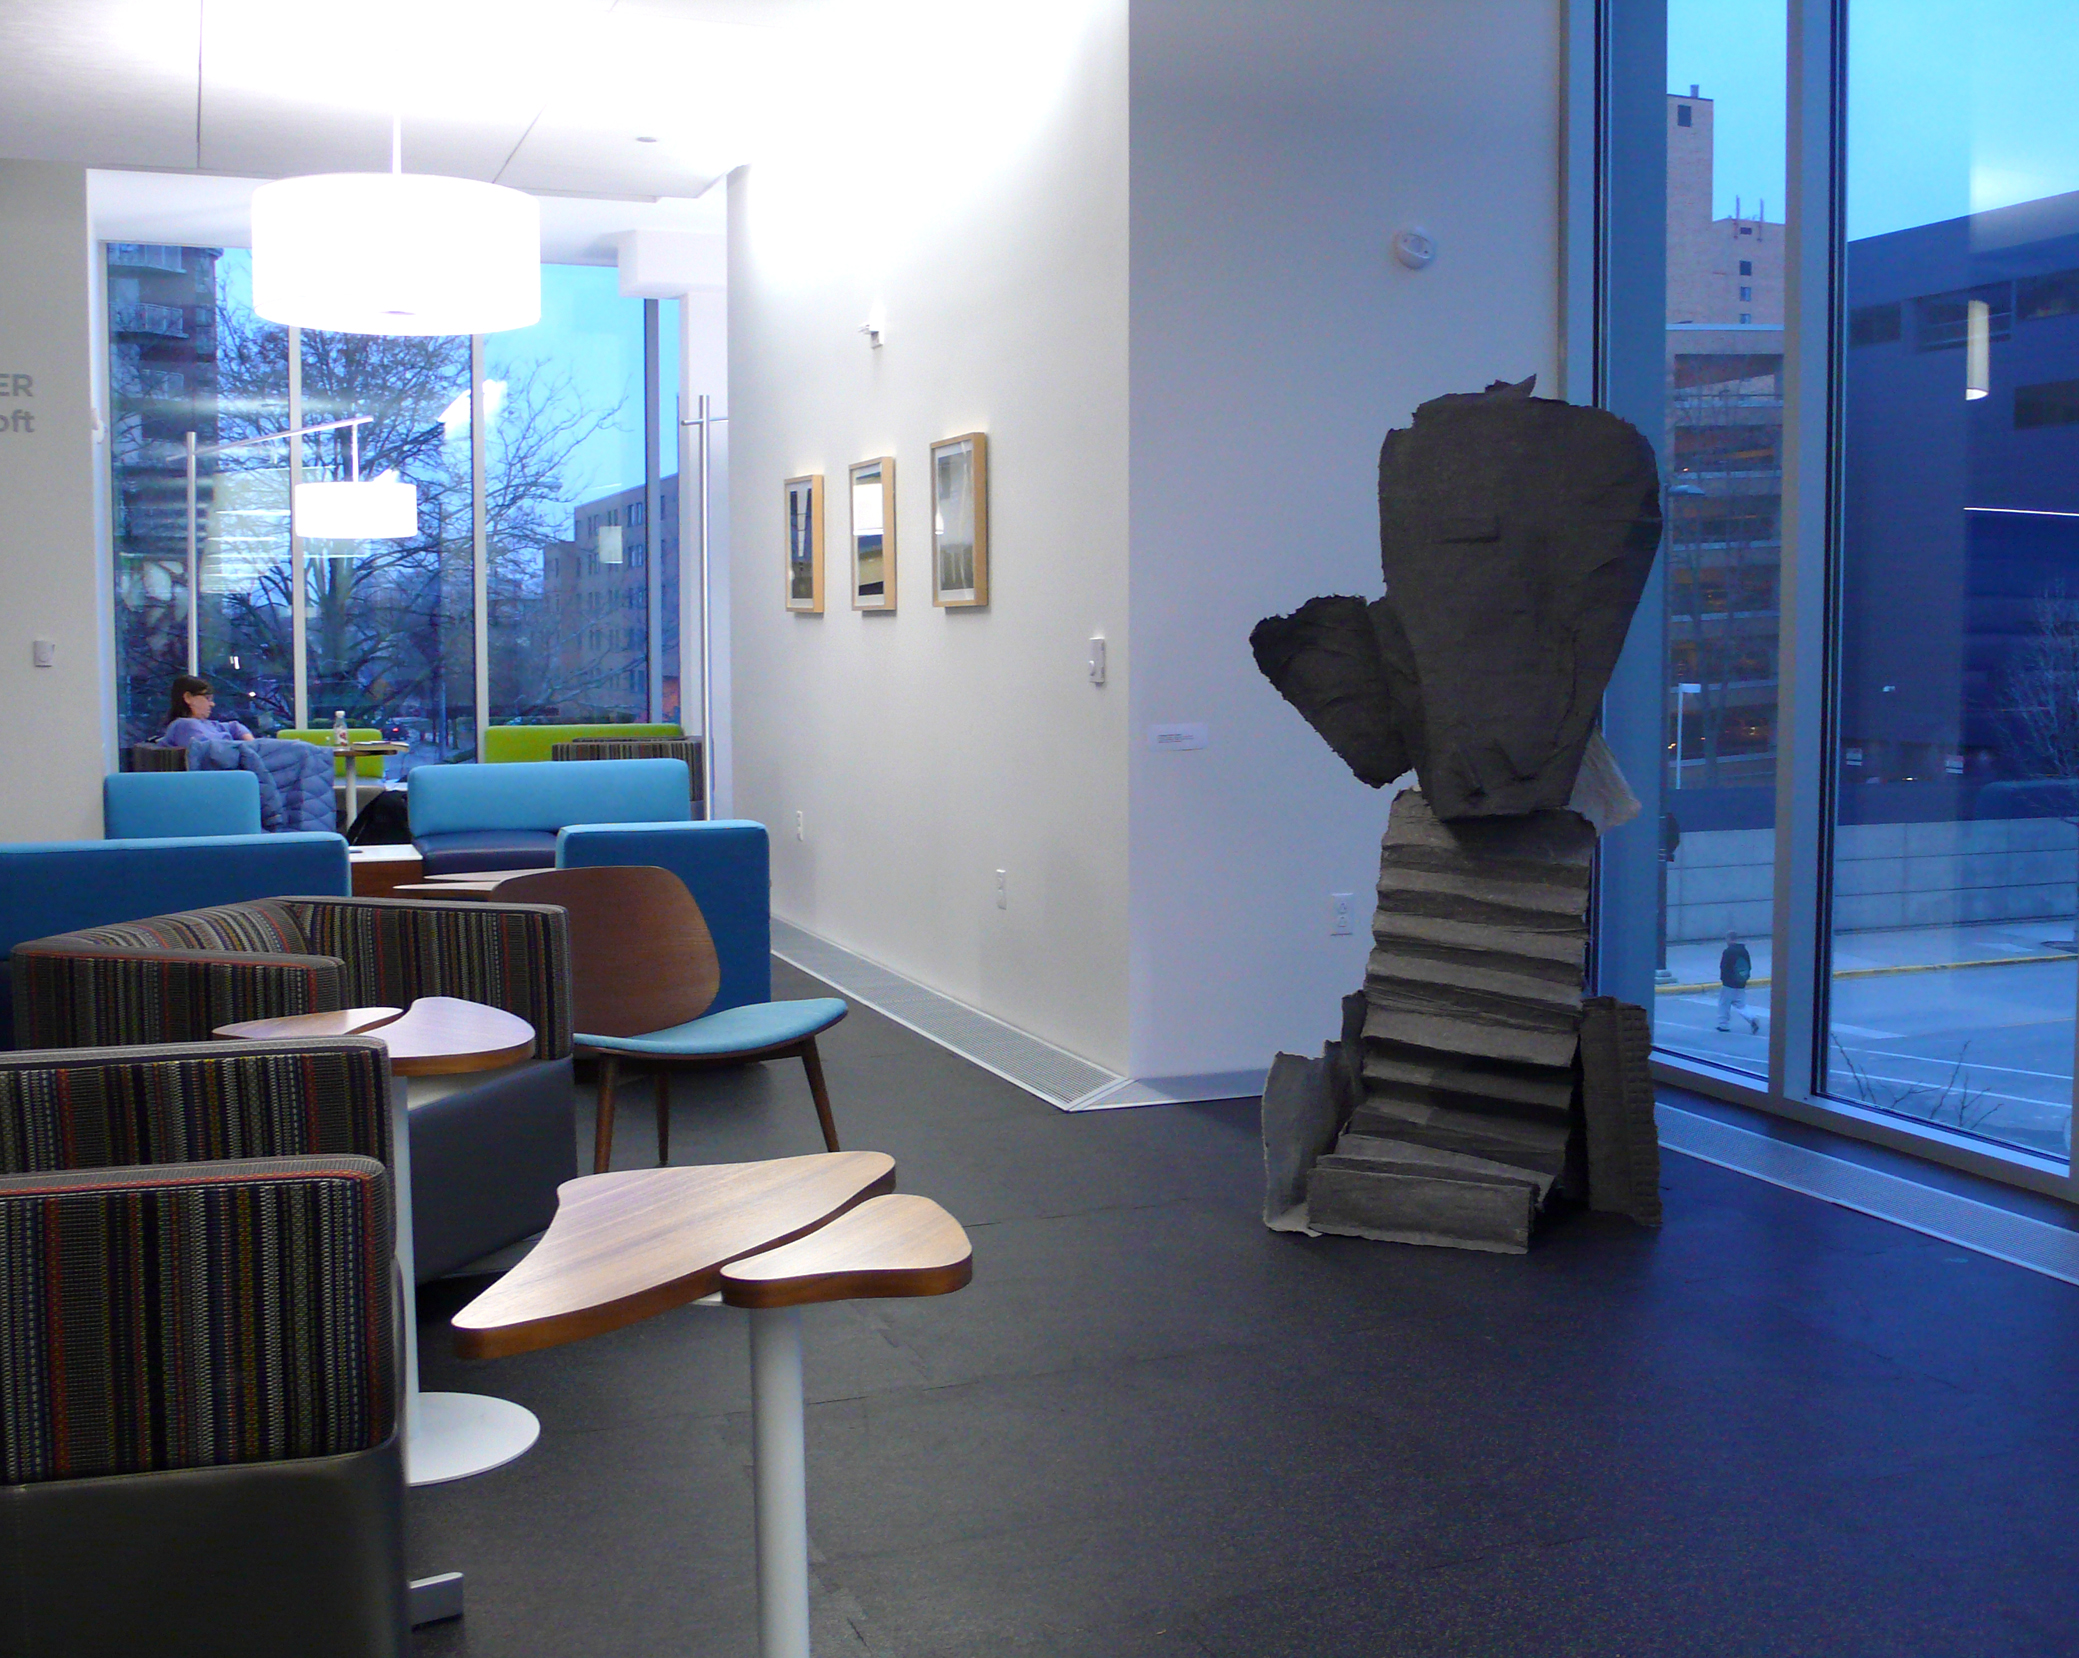 This Column lived on the 1st floor after the show for a while.